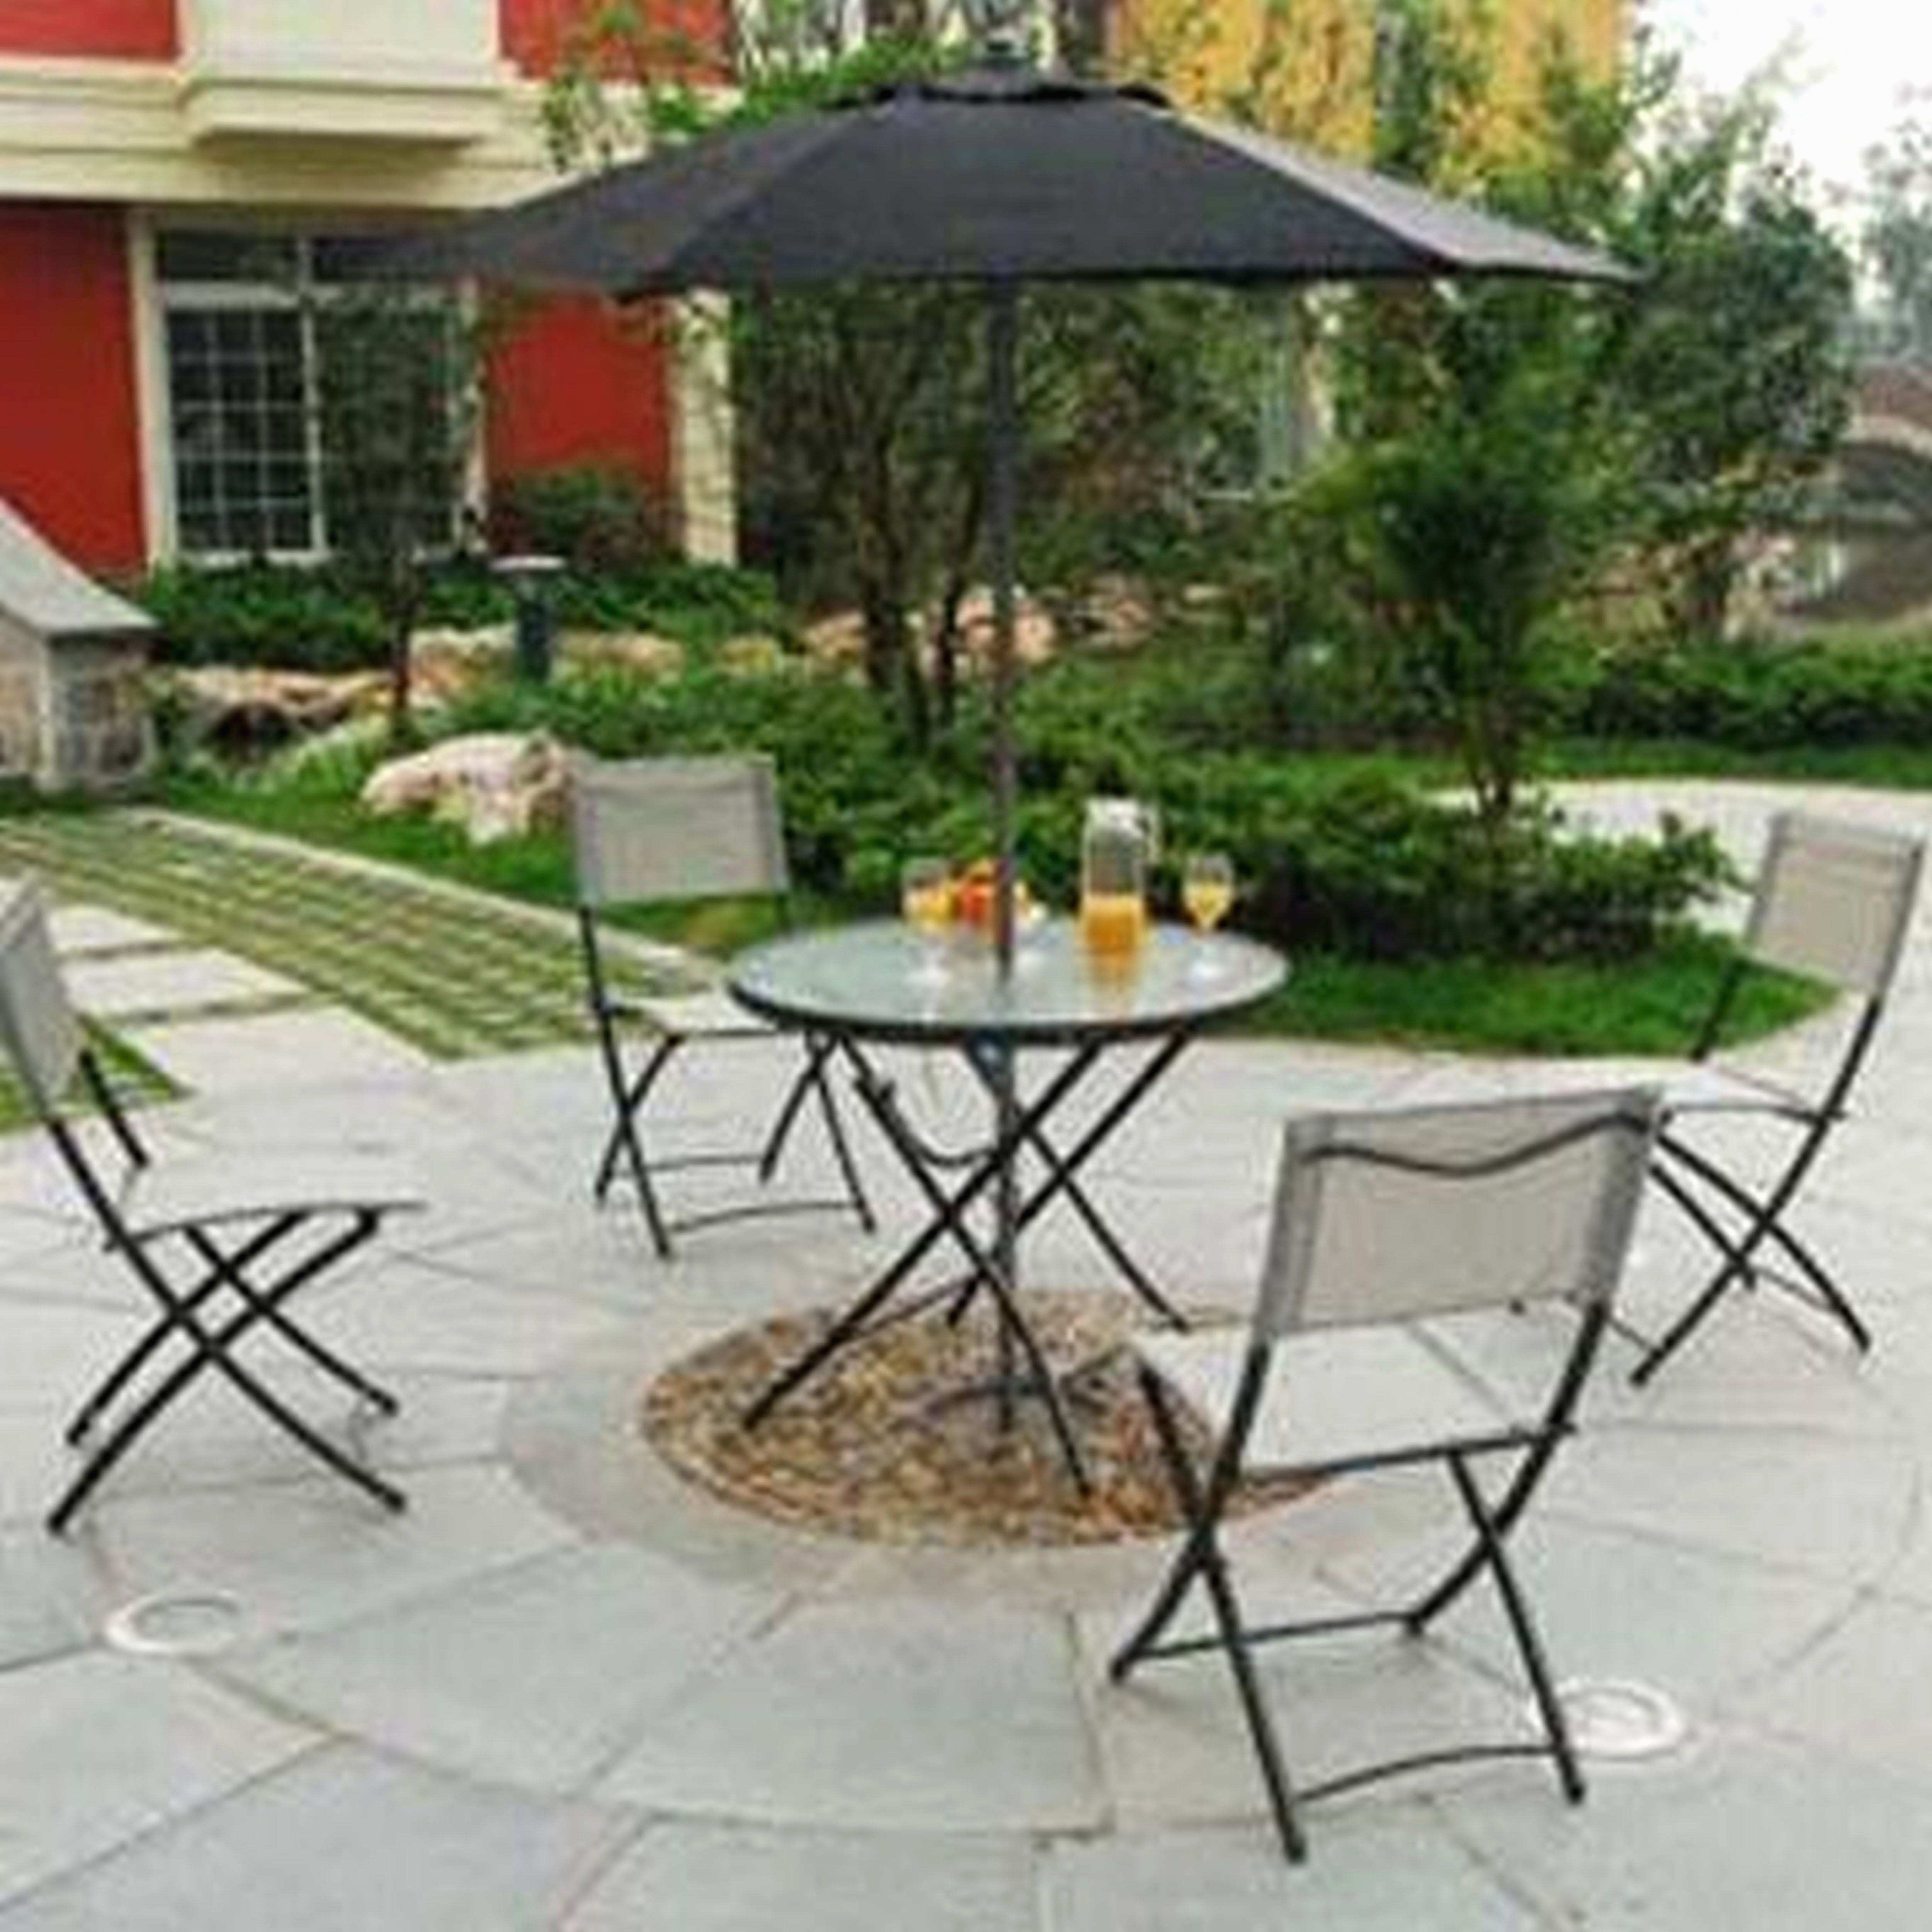 Paynesvillecity With Regard To Patio Umbrellas For Small Spaces (Gallery 17 of 20)